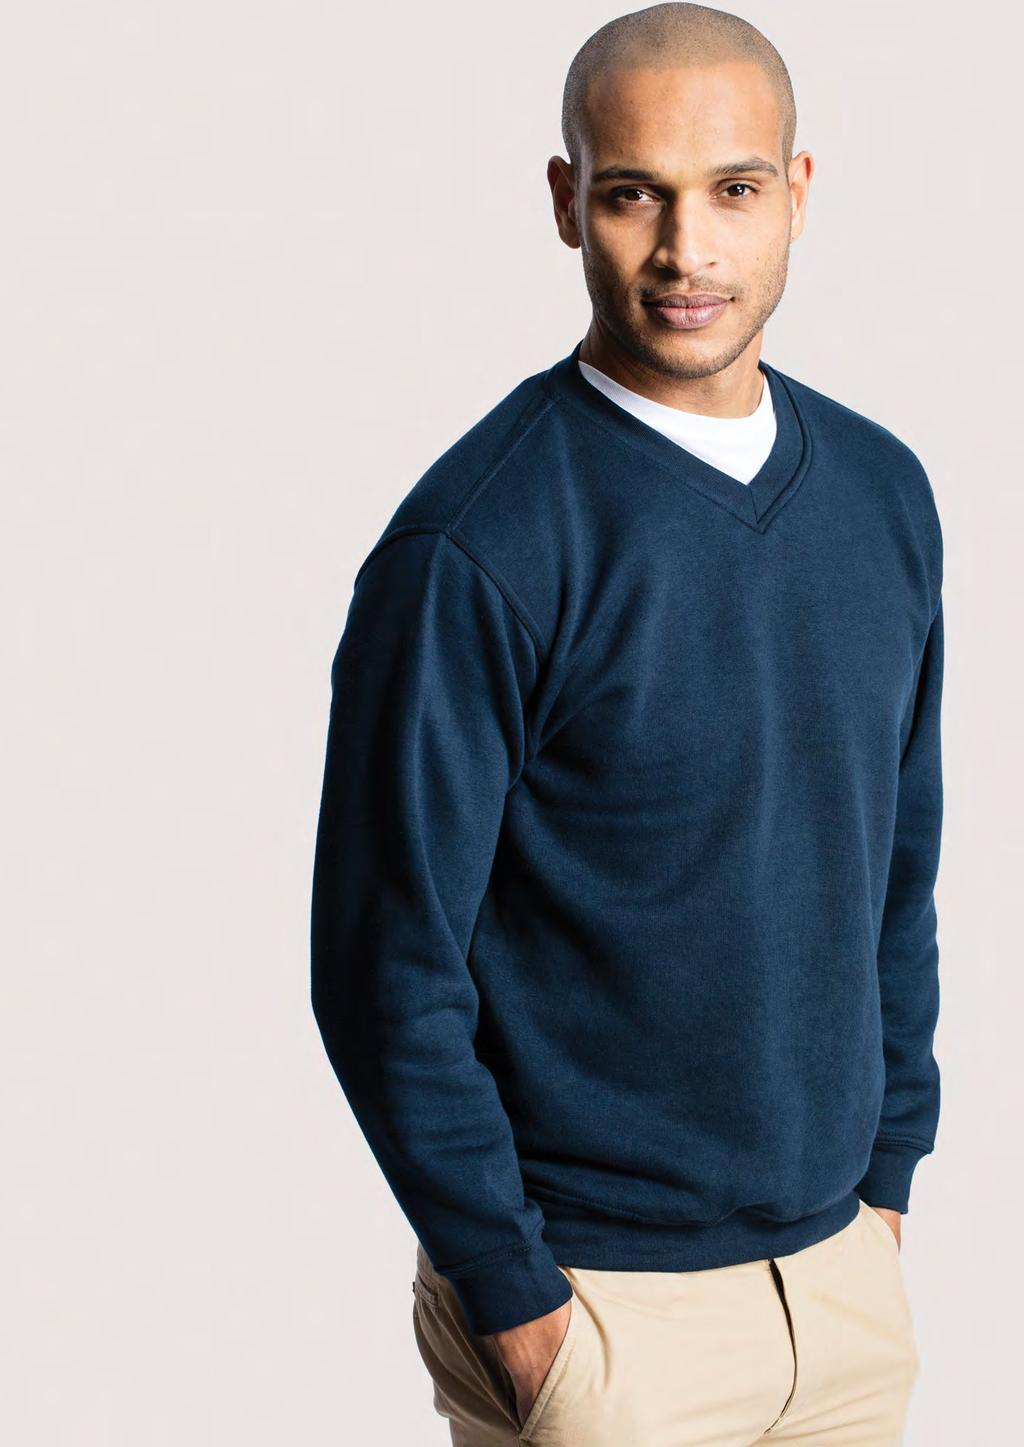 SWEATSHIRTS UC204 UNISEX PREMIUM V-NECK SWEATSHIRT 300 60 30/10 50% Polyester 50% Cotton Reactive Dyed V-Neck Set in Sleeve Lycra Ribbed Cuffs, Welt & Neck Twin Needle Stitching at Neck, Shoulders,